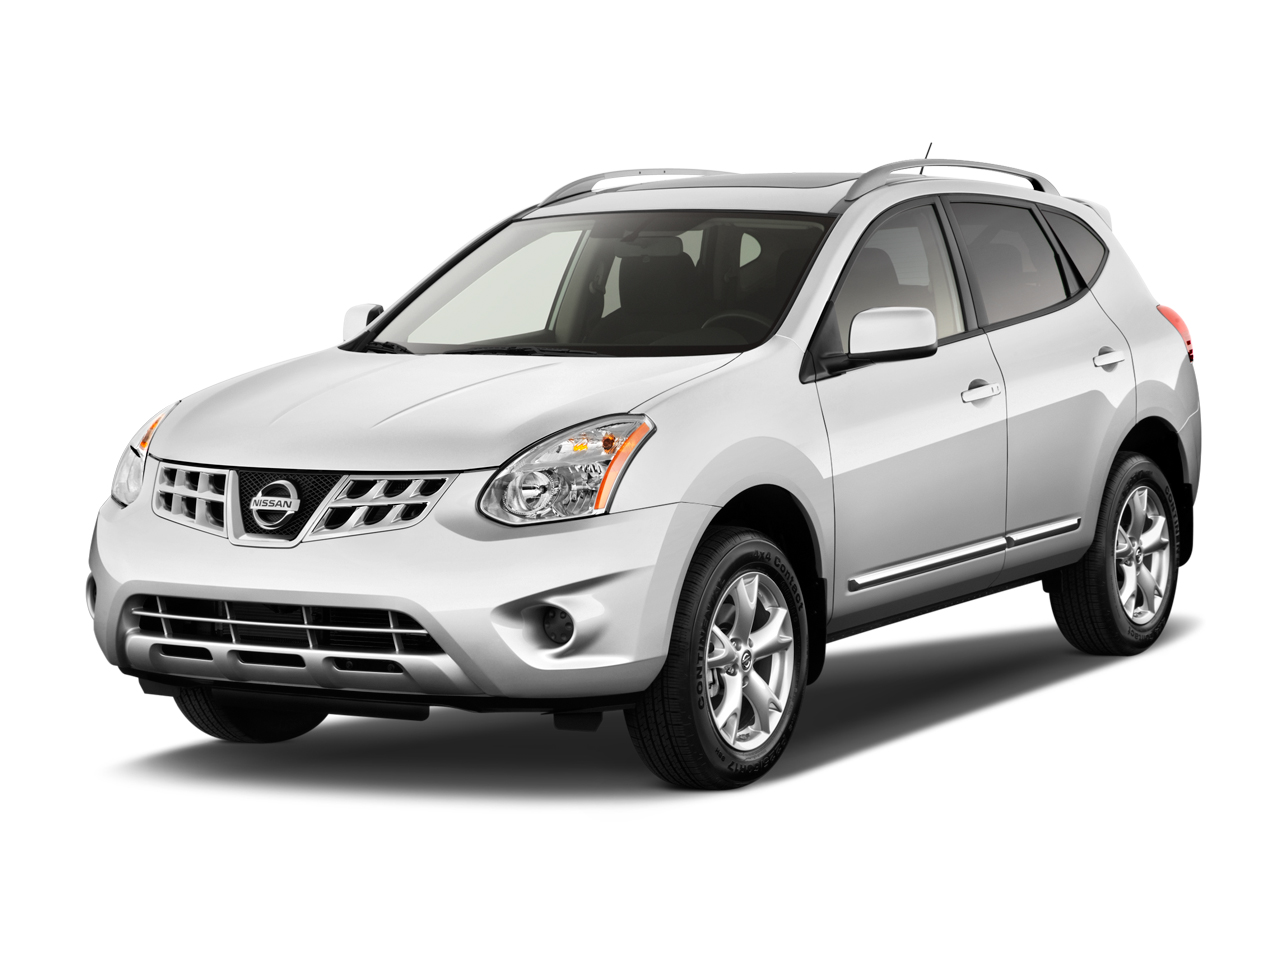 2012 nissan rogue gas mileage the car connection. Black Bedroom Furniture Sets. Home Design Ideas